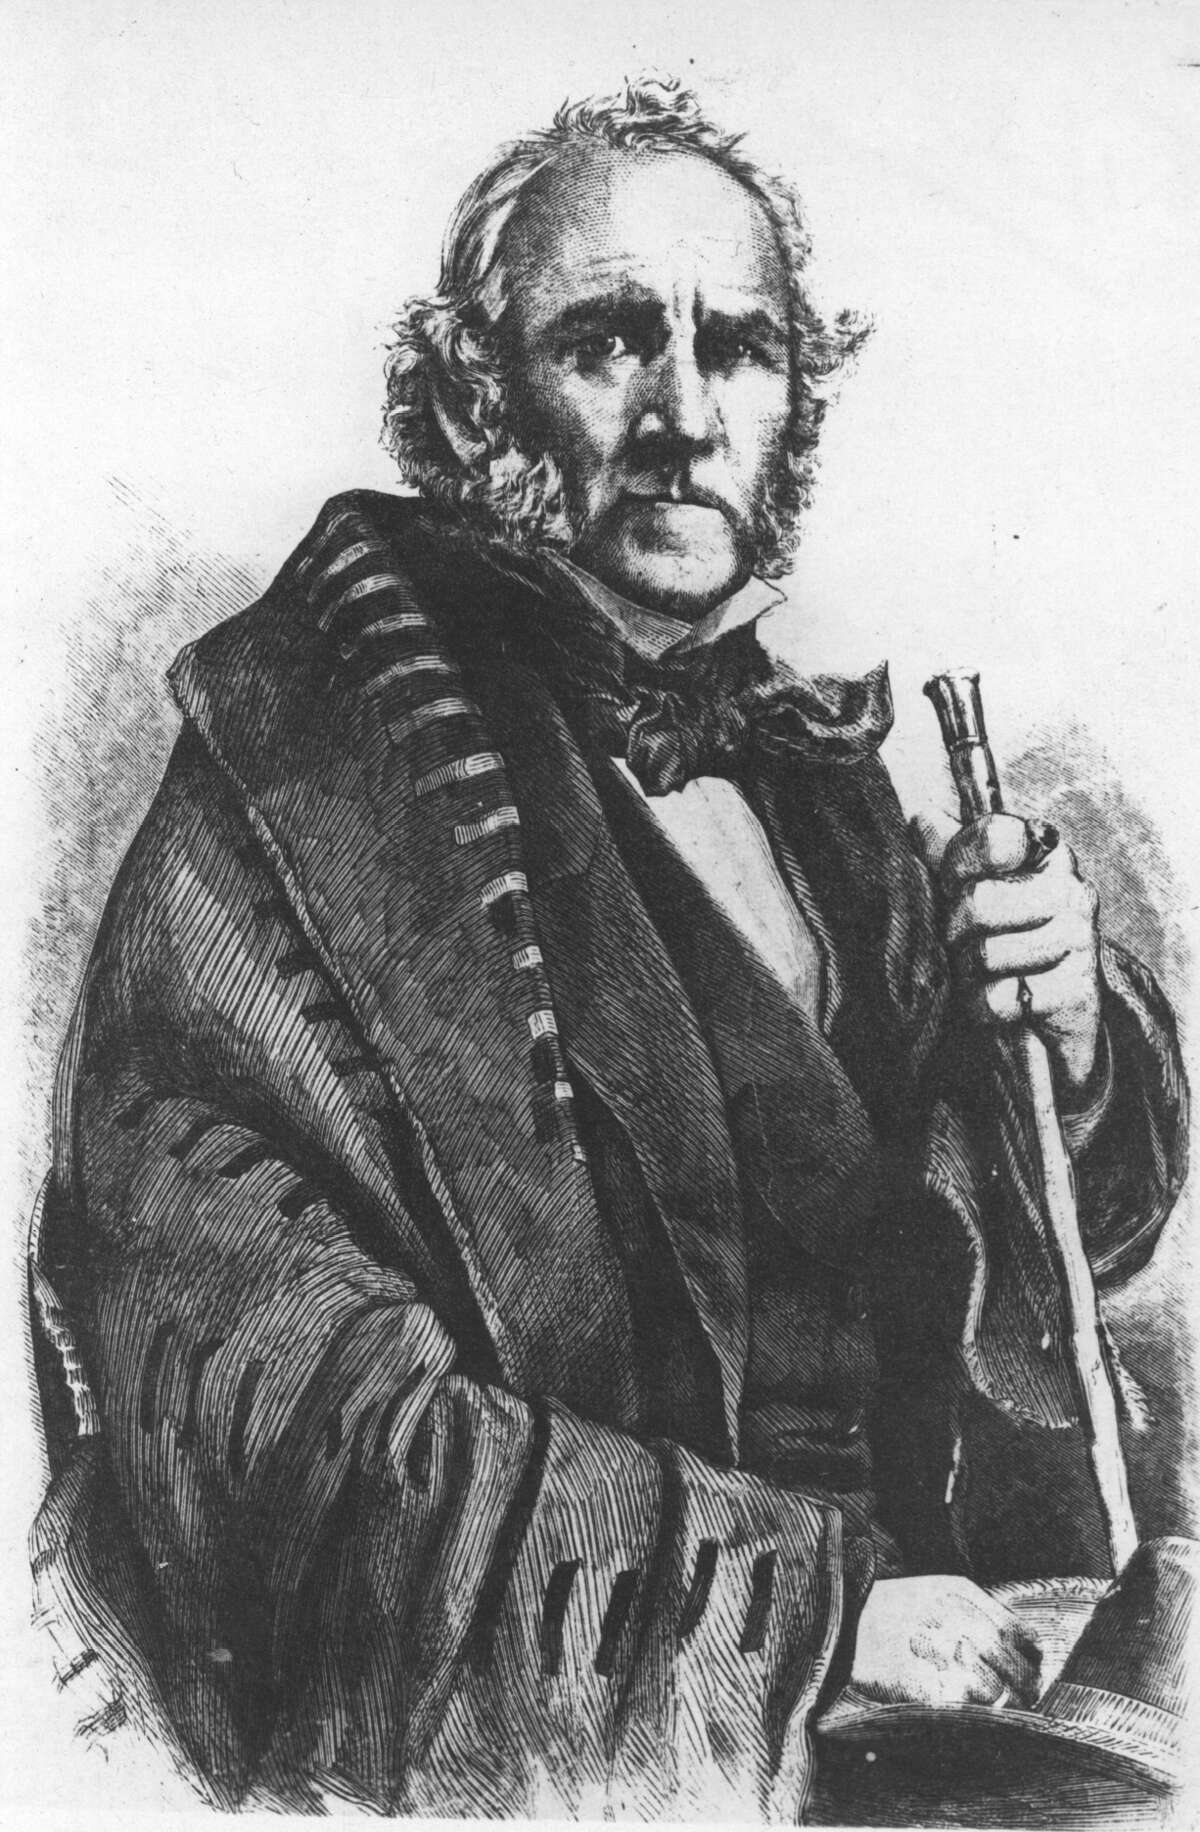 Pro-annexationFact : The first president of the Republic of Texas, Sam Houston encouraged U. S. annexation of Texas throughout the Republic's nine-year history.